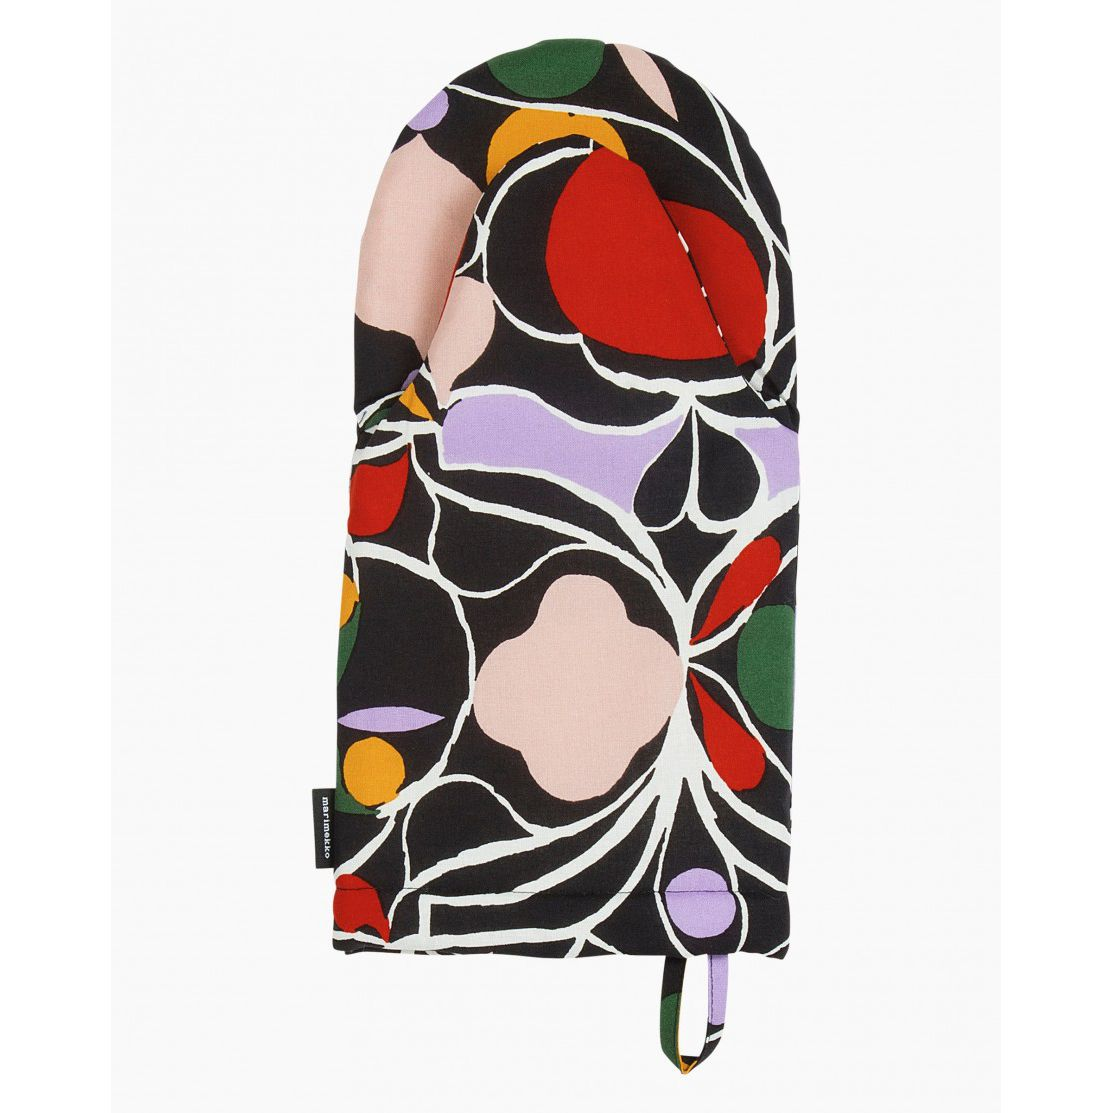 A patterned oven mitt with a swirled pattern, with splotches of red, light pink, and purple coloring.